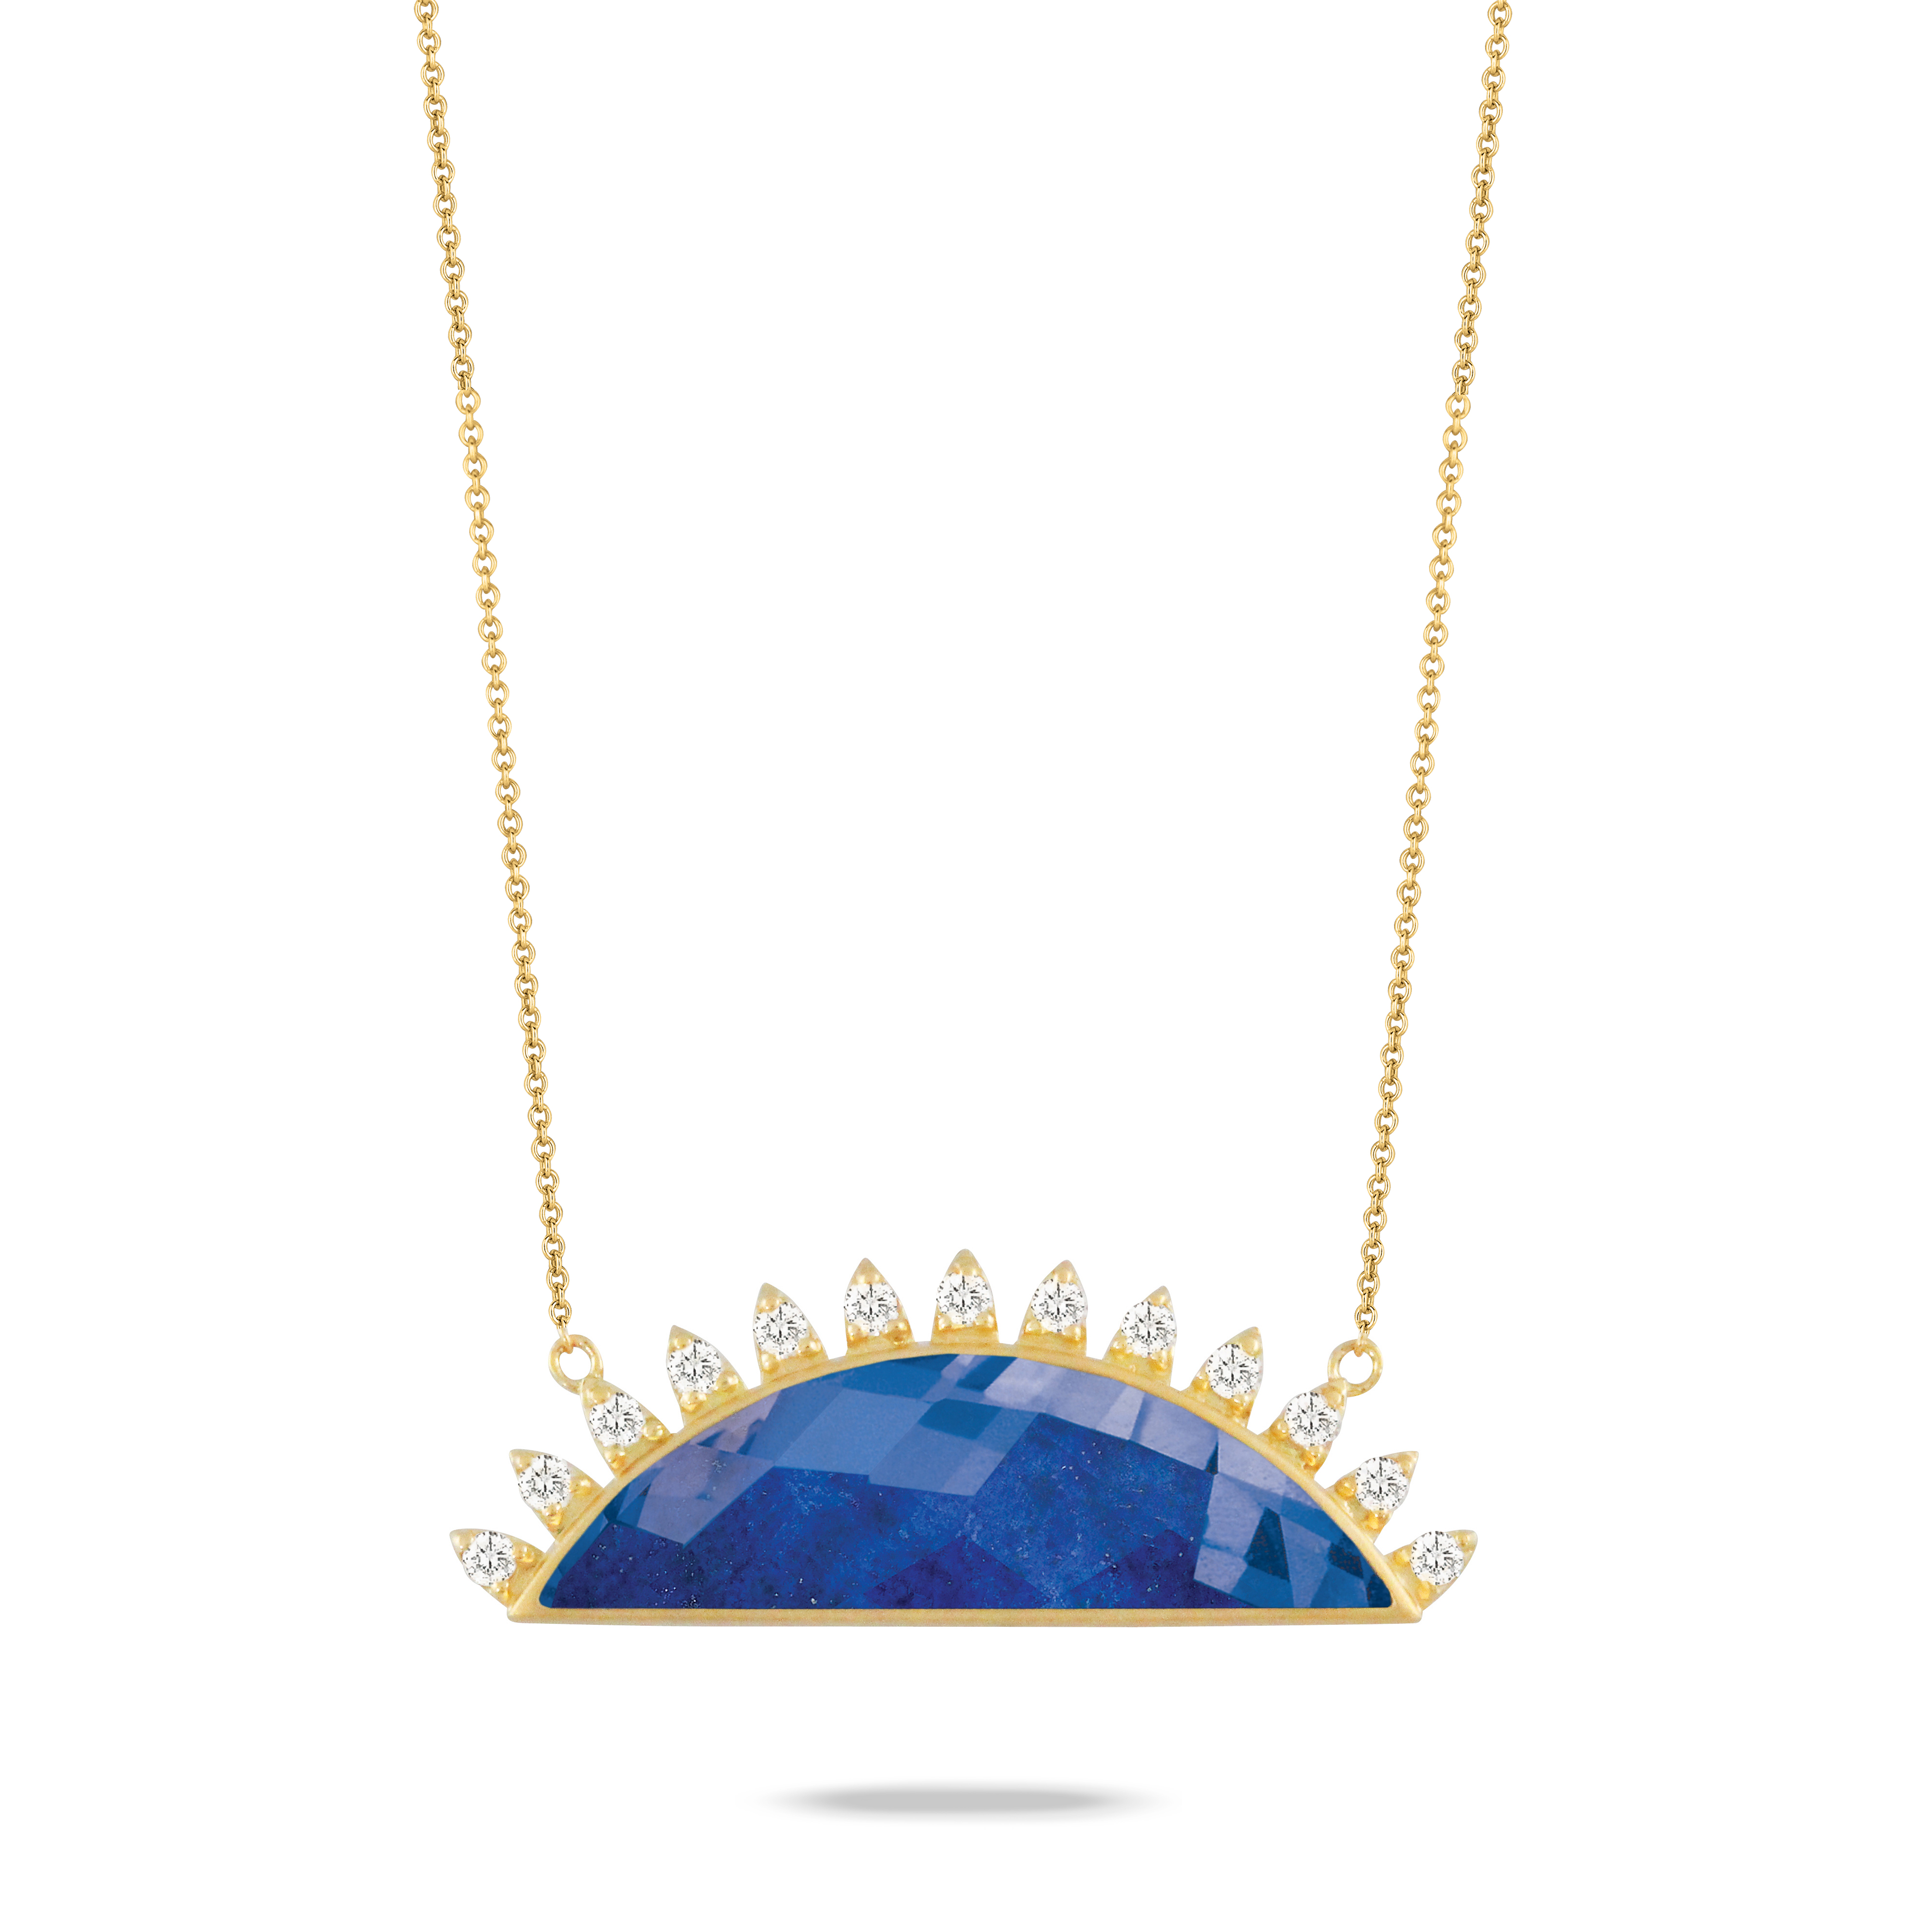 18K Yellow Gold Lapis Lazuli Necklace - 18K Yellow Gold Diamond Necklace With Clear Quartz Over Lapis